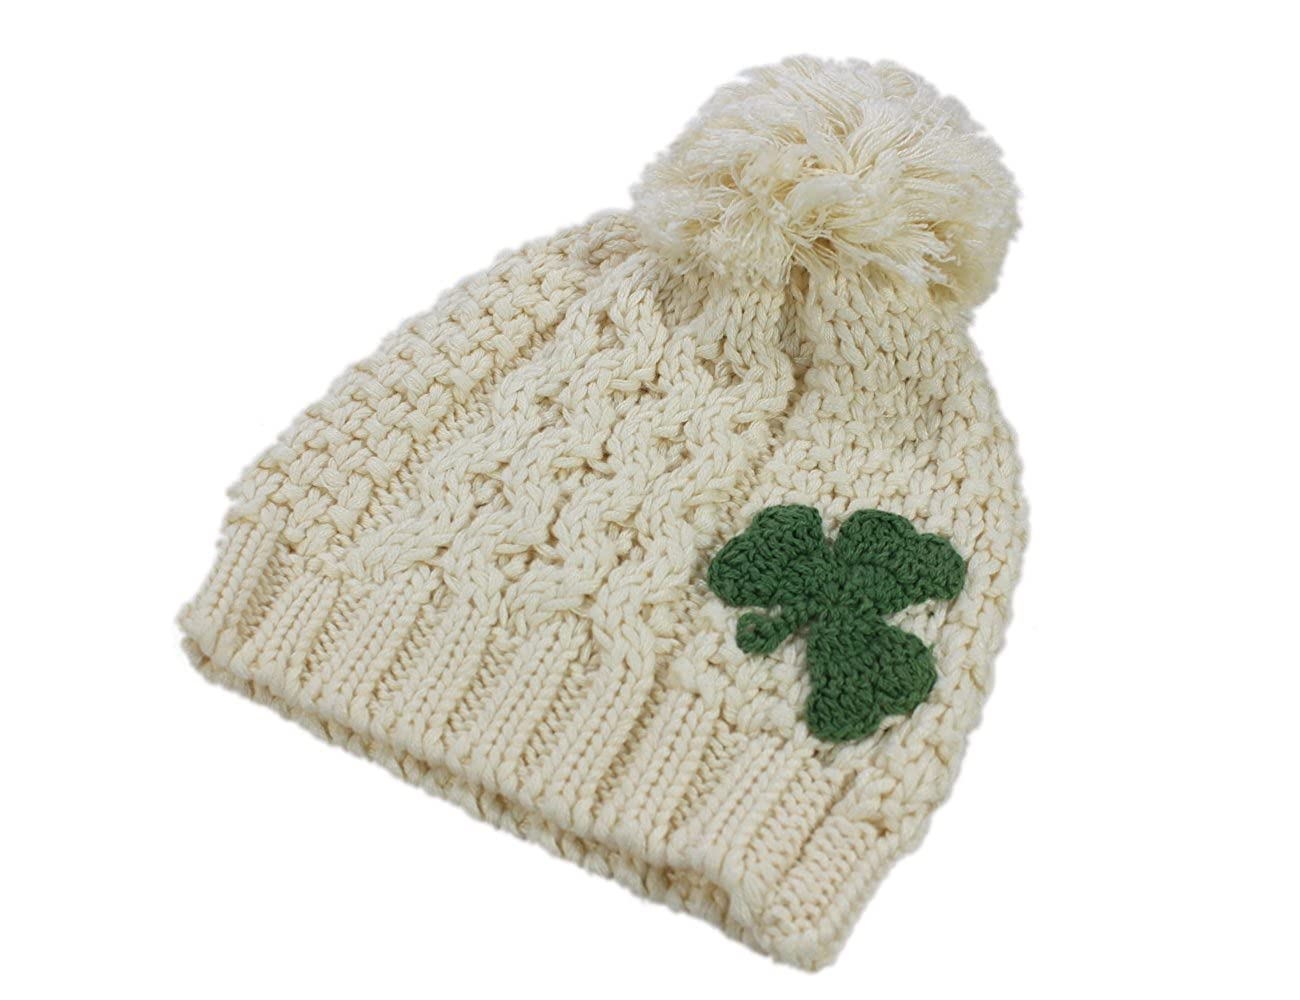 Patrick Francis Traditional Craft Kids Knitted Bobble Hat with Green  Embossed Shamrock Design 9da7ed13433